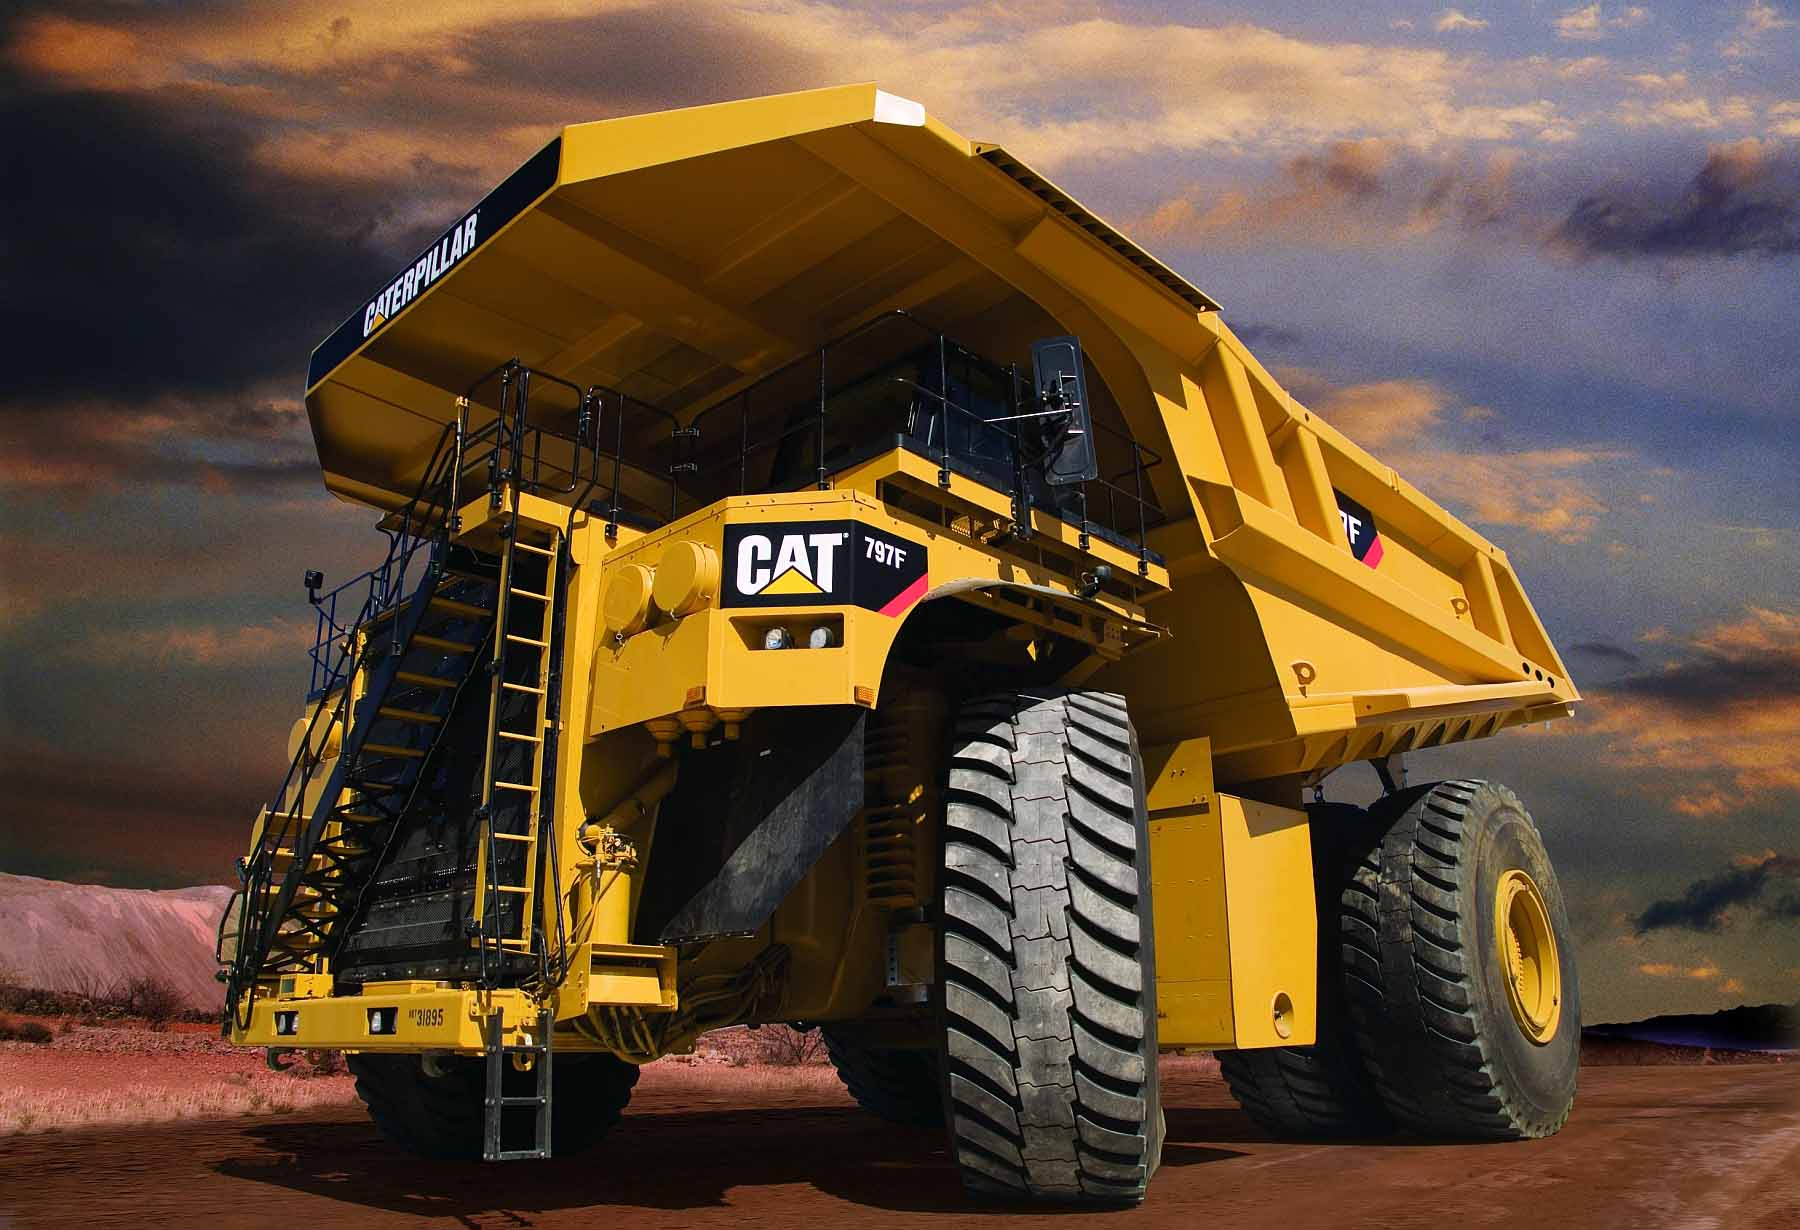 Caterpillar Wallpapers, Images full HD Backgrounds gallery